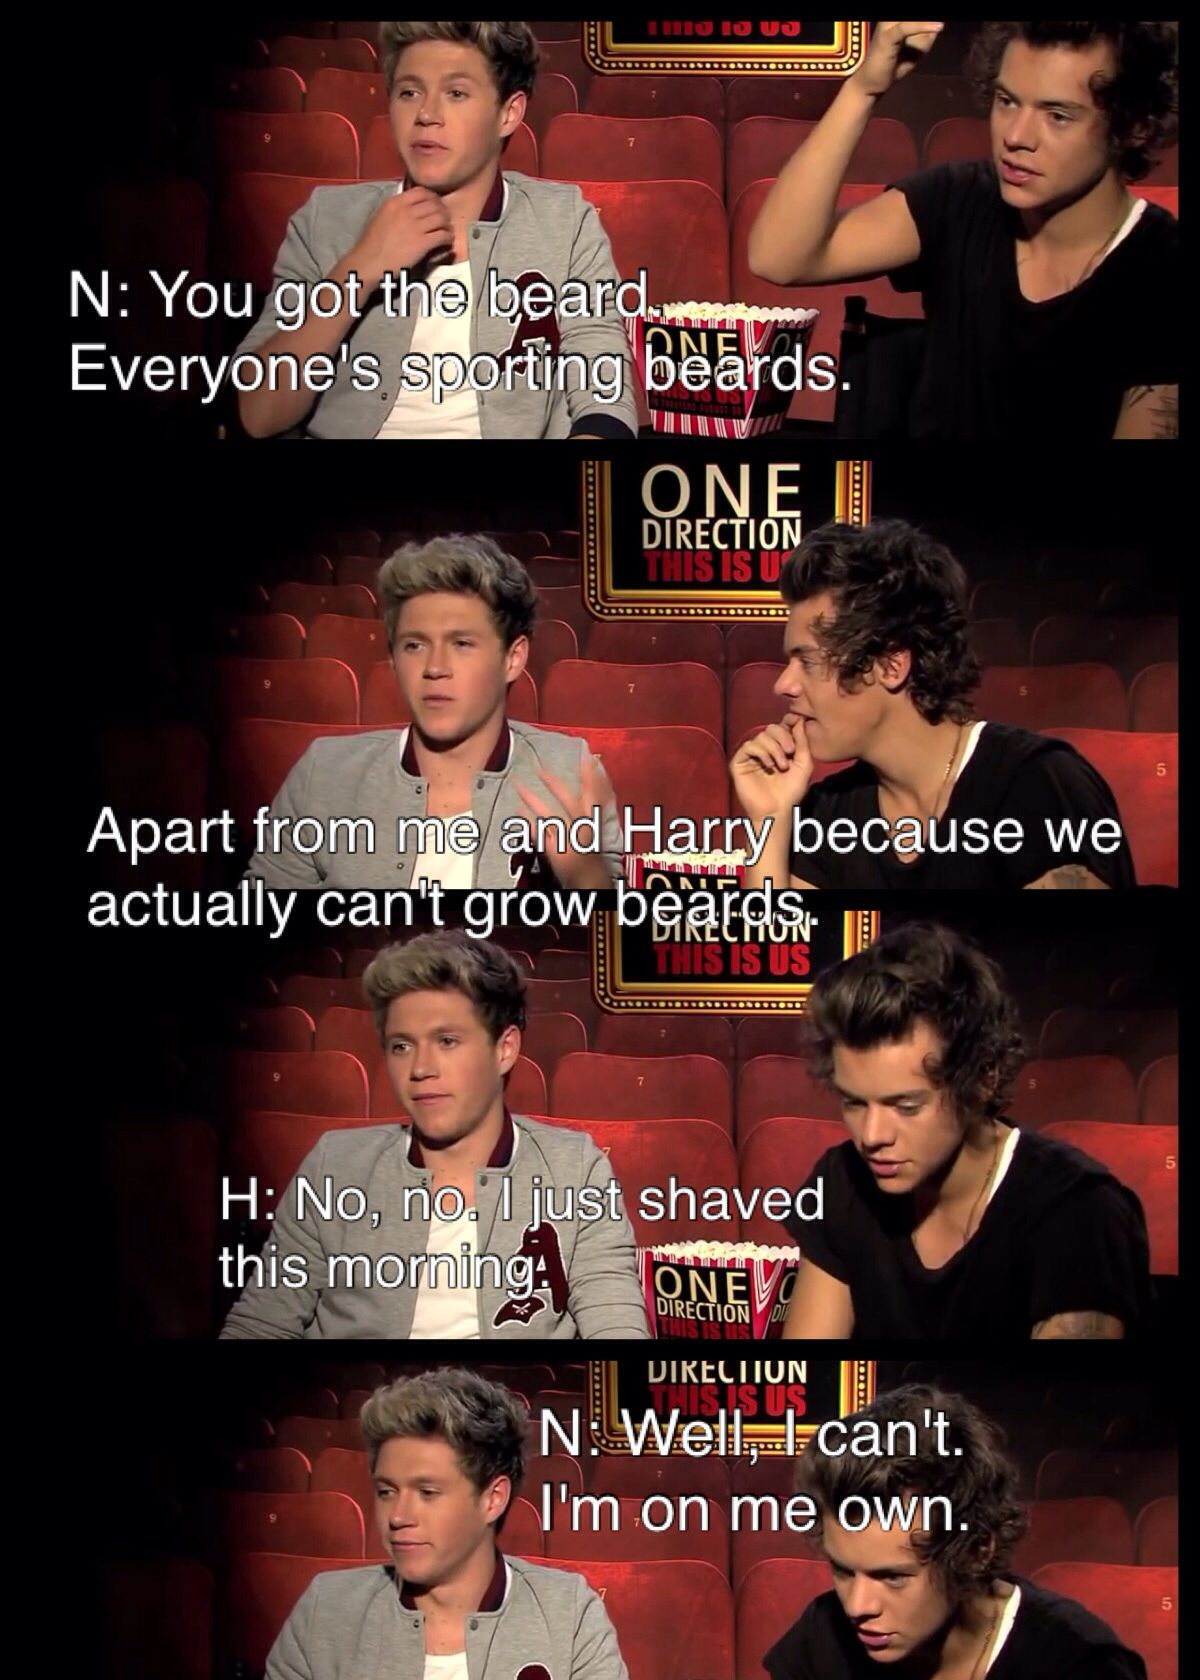 Image of: Interview One Direction Funny Moments Of 2013 Funny Interview One Direction Interview Harry Styles Niall Horan Zayn Malik Liam Payne Louis Tomlinson Niall Pinterest Awe Poor Niall One Direction Funny Moments Of 2013 Funny